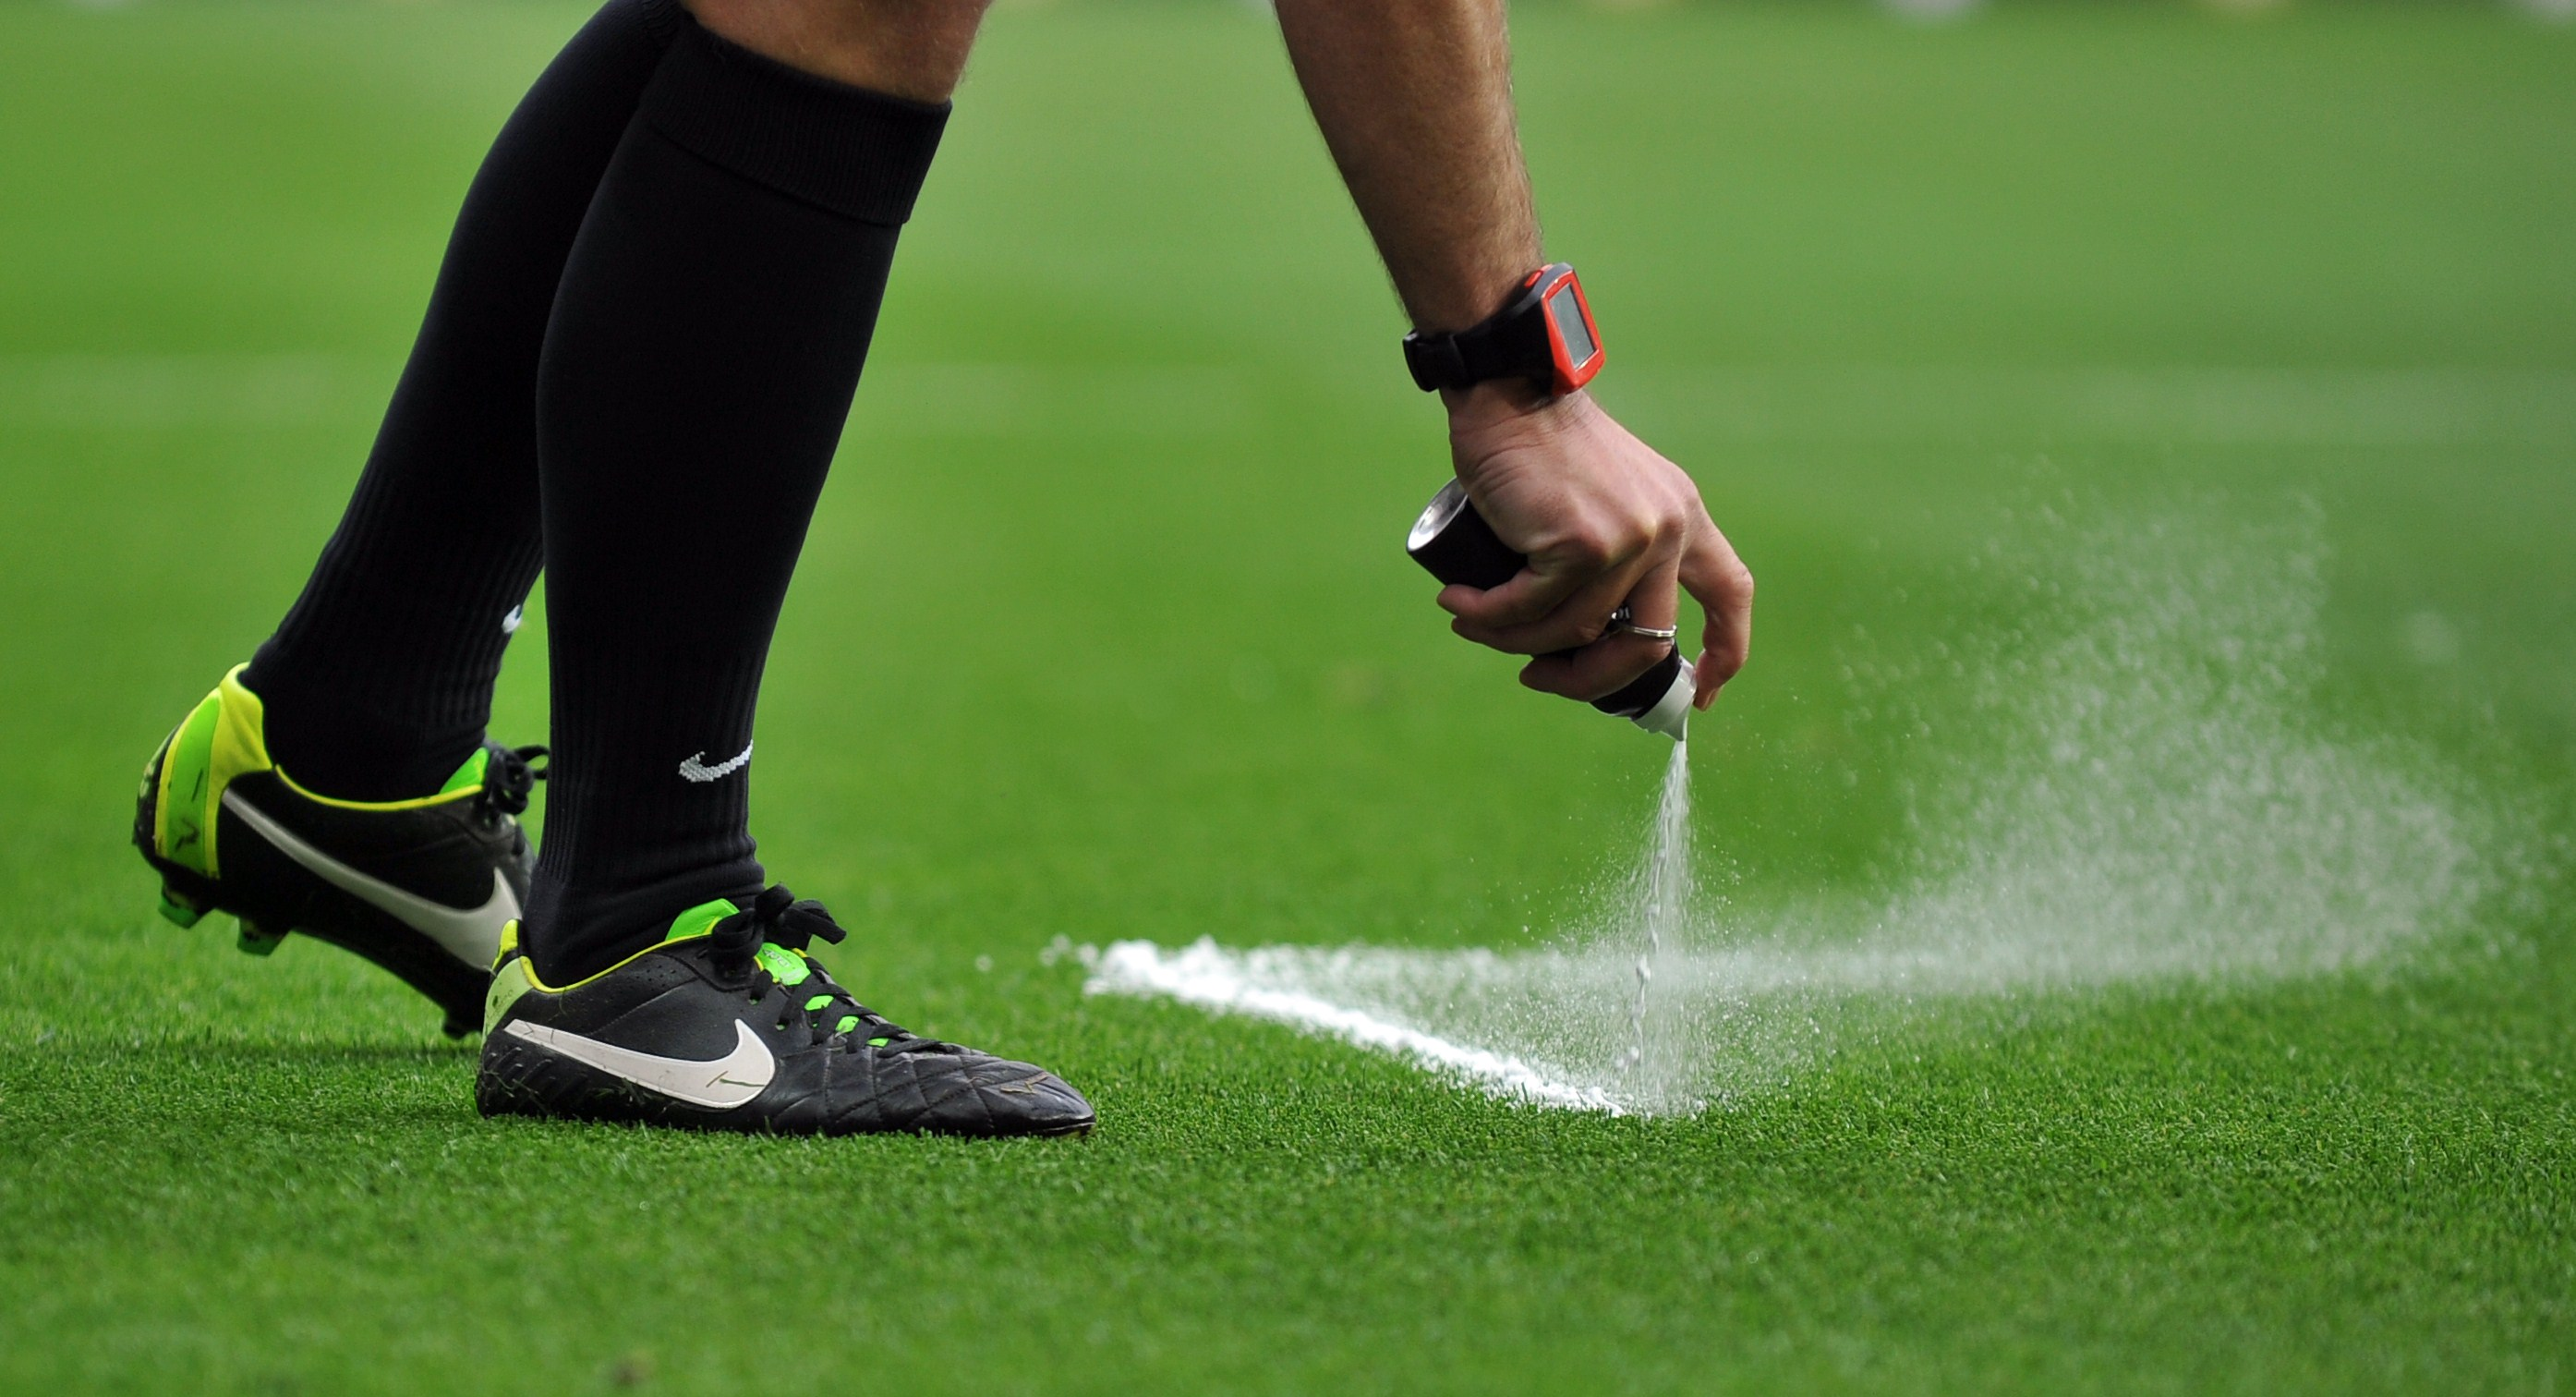 Referee sprays a line